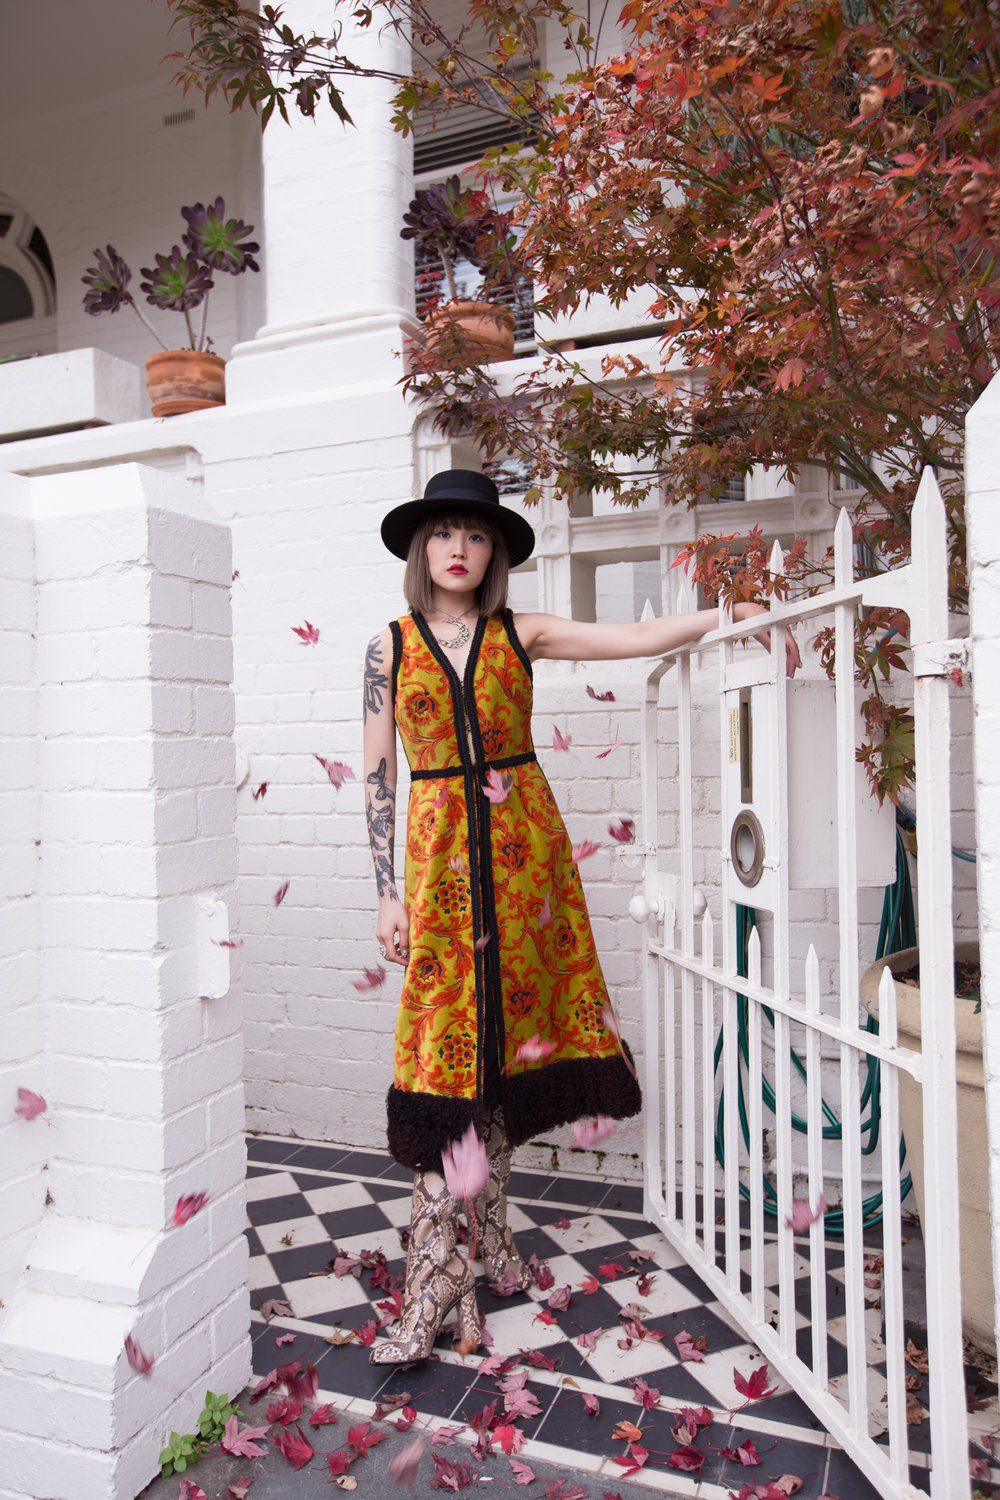 Autumn Leaves  Dress: The Vintage Emporium// @thevintagemporium  Hat: The Eternal Headonist // @theternalheadonist Jewellery: Emgee // @emgee_ig  Shoes: Gucci // @gucci